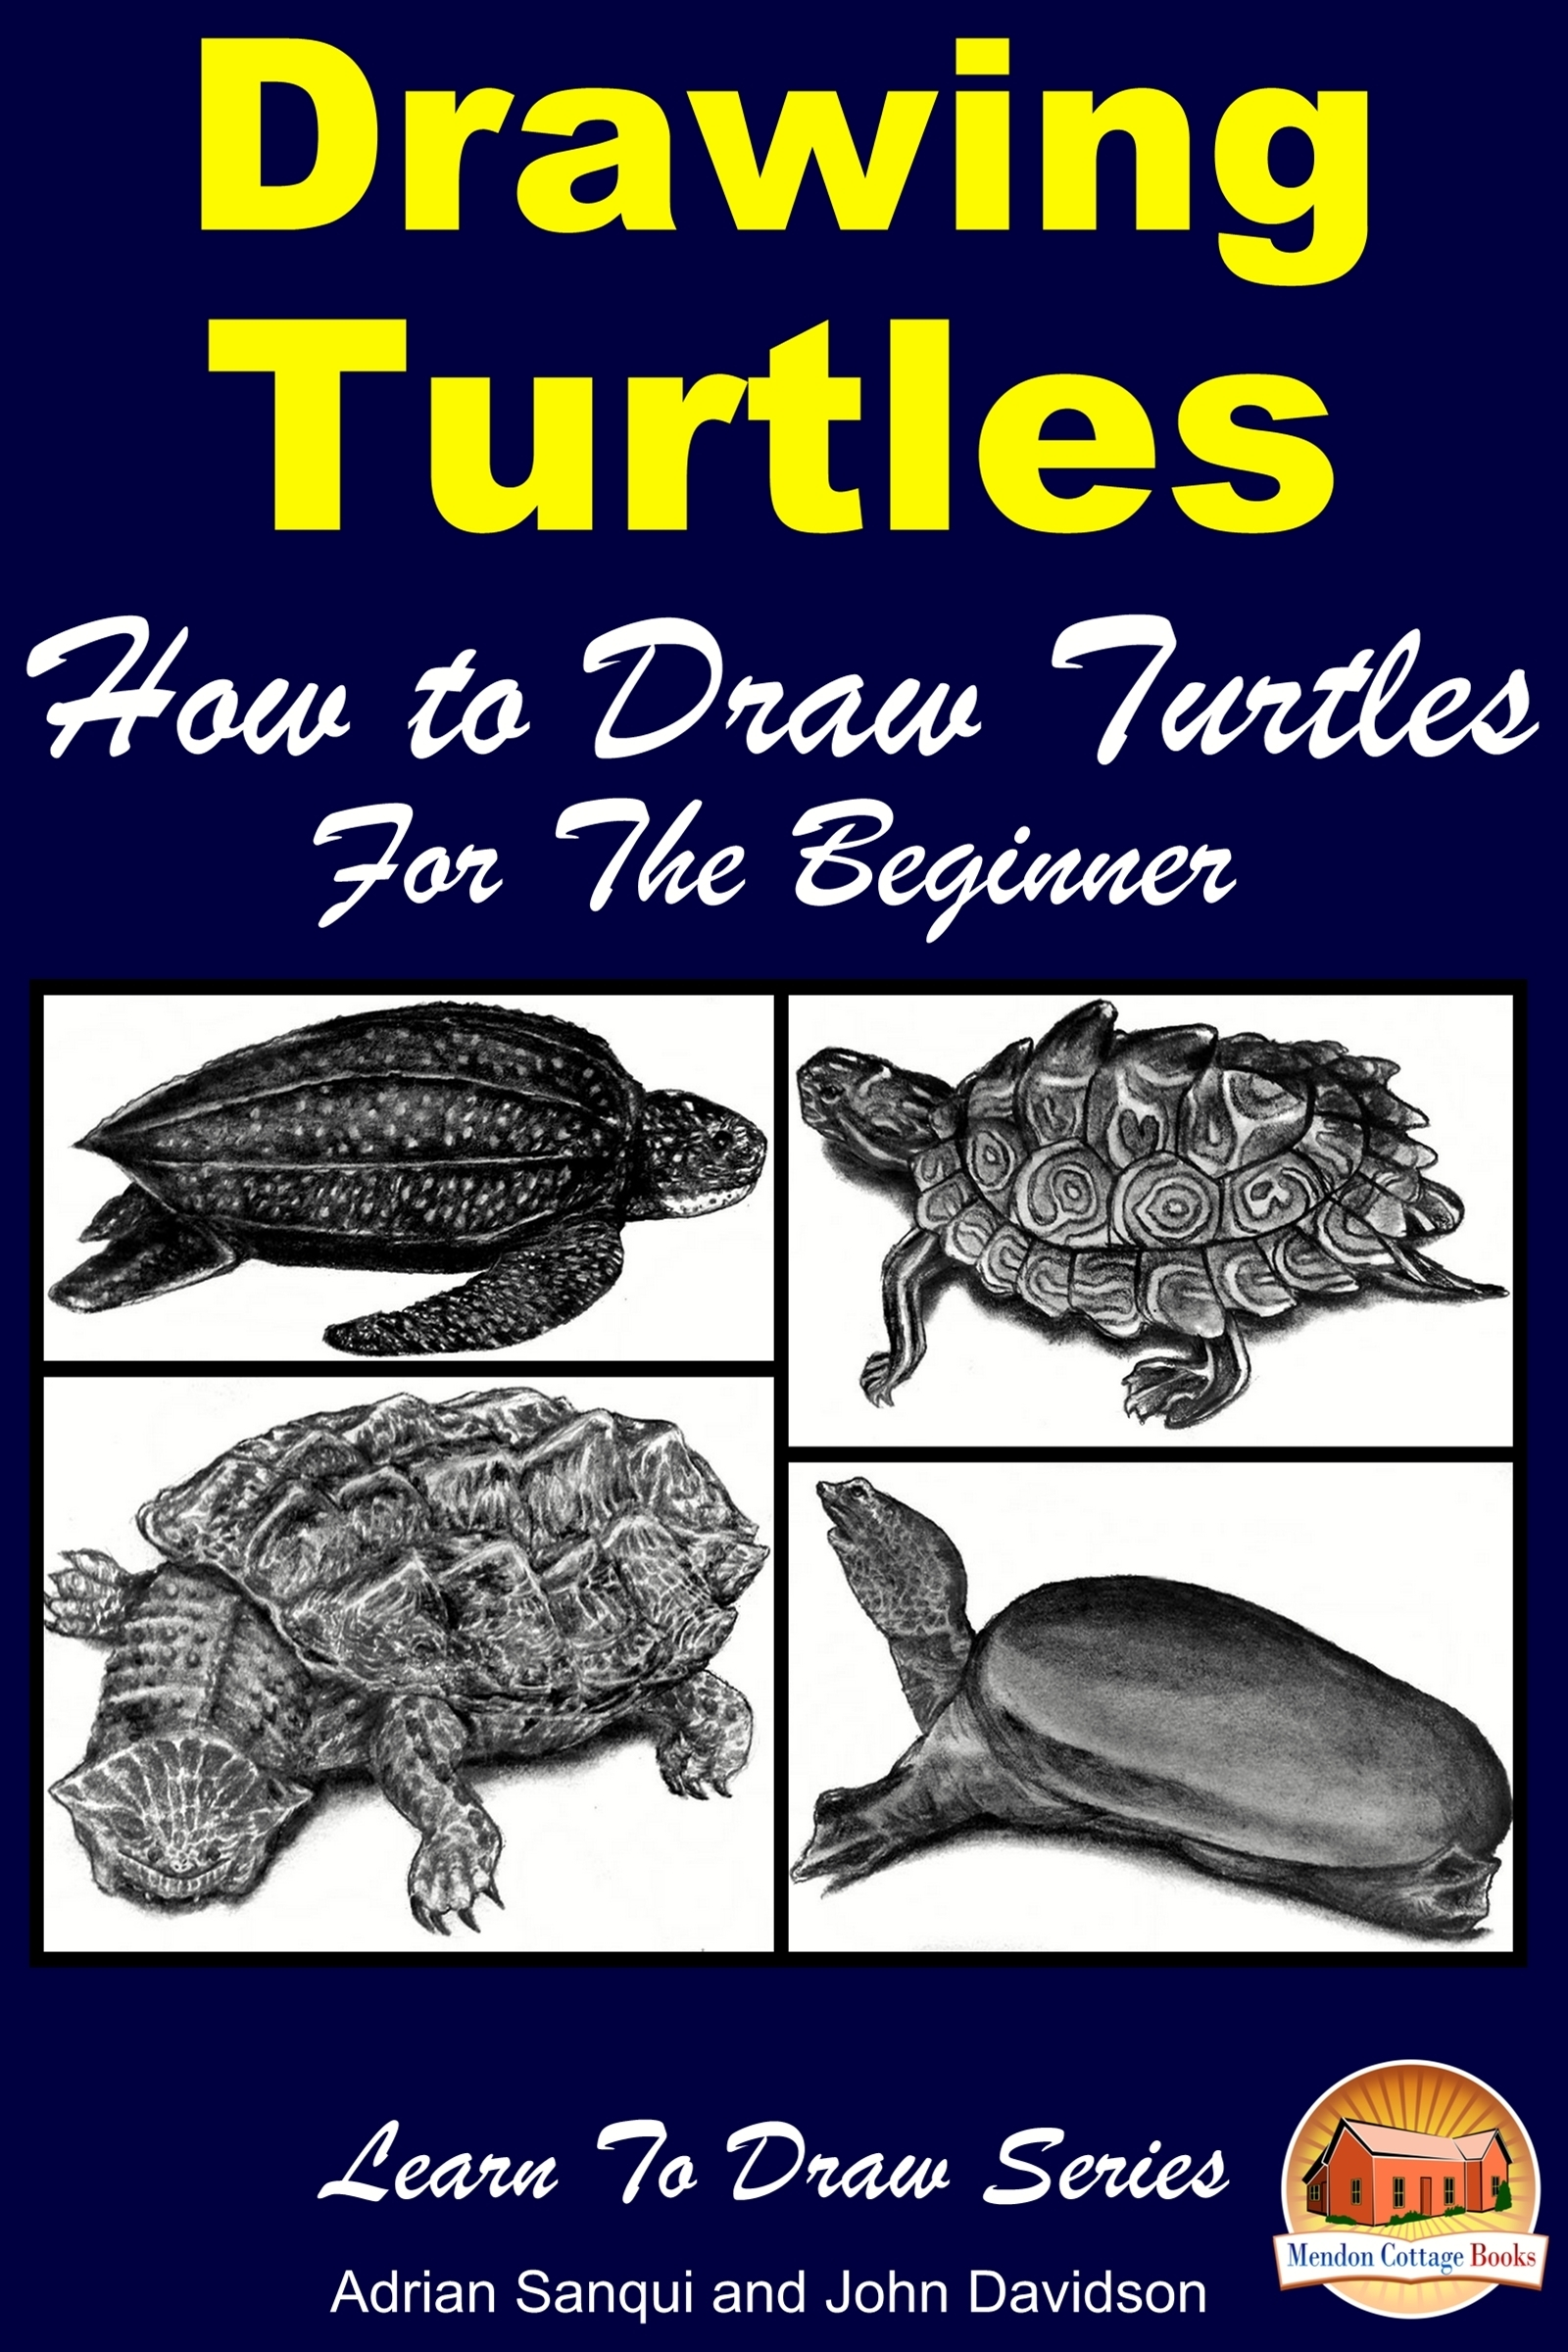 Drawing Turtles: How to Draw Turtles For the Beginner